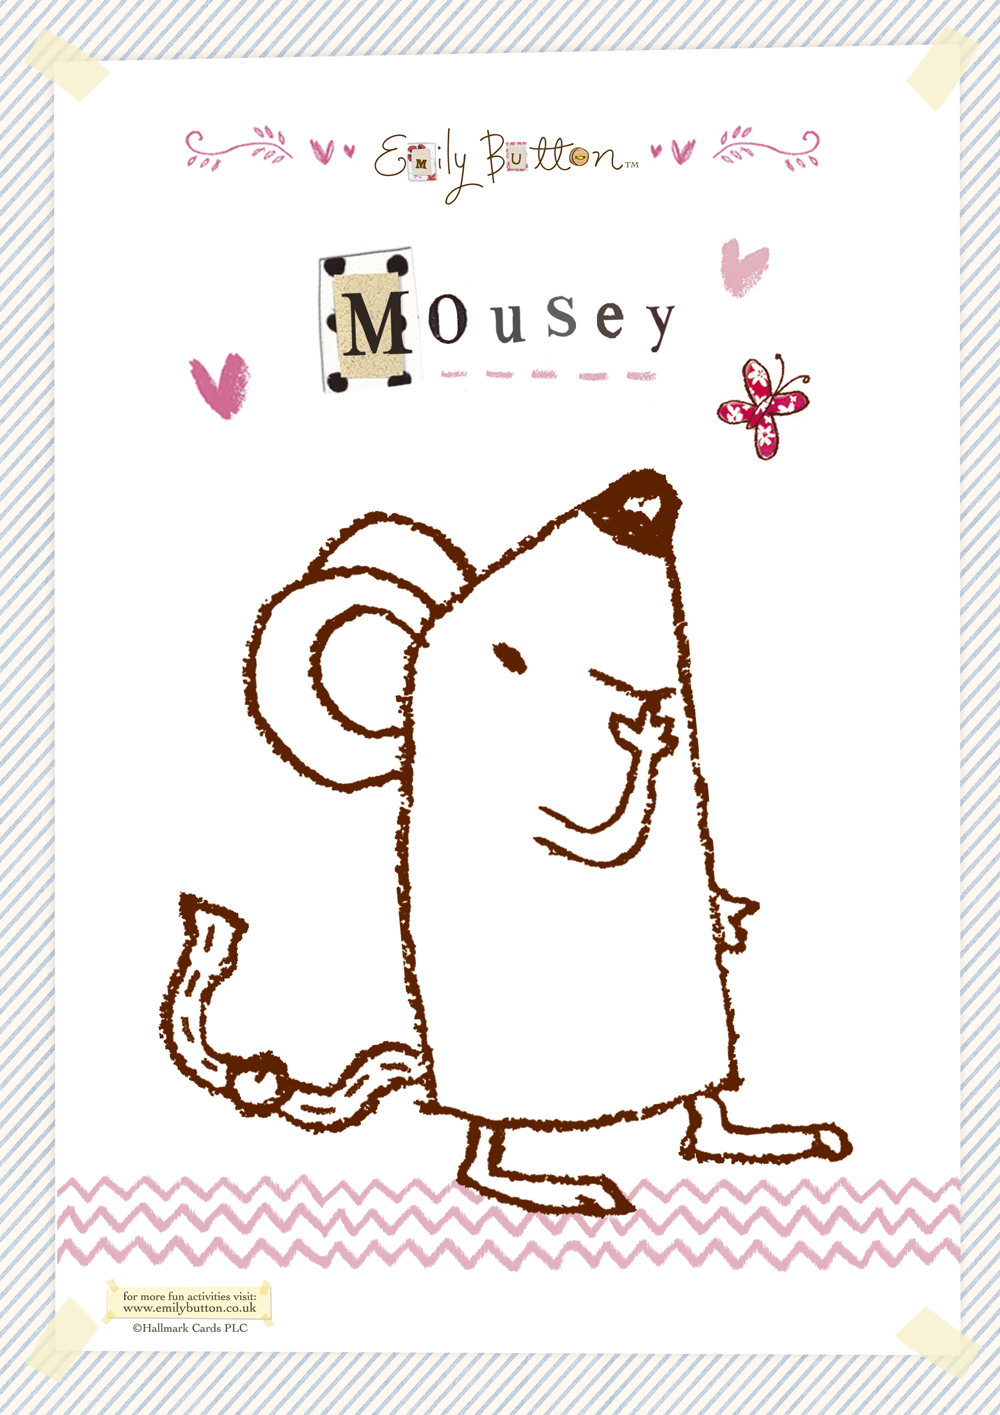 Mousey - Download the pdf (572kb)